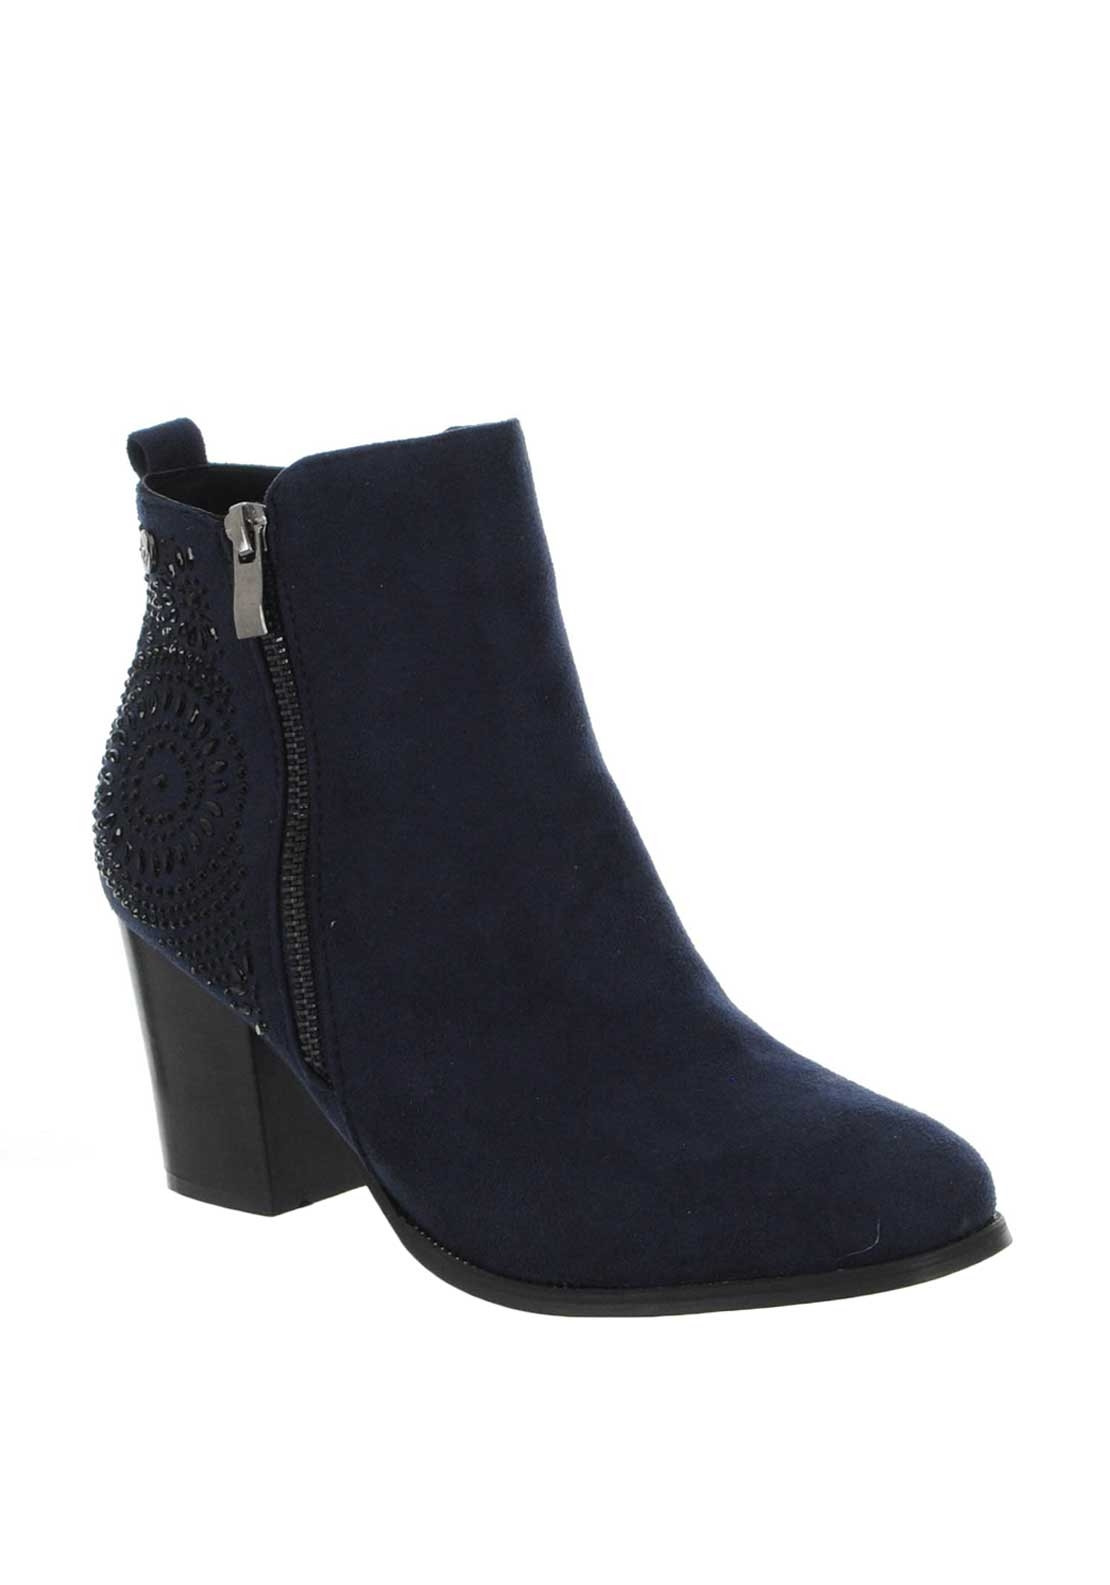 Xti Womens Gem Zip Block Heel Boots, Navy